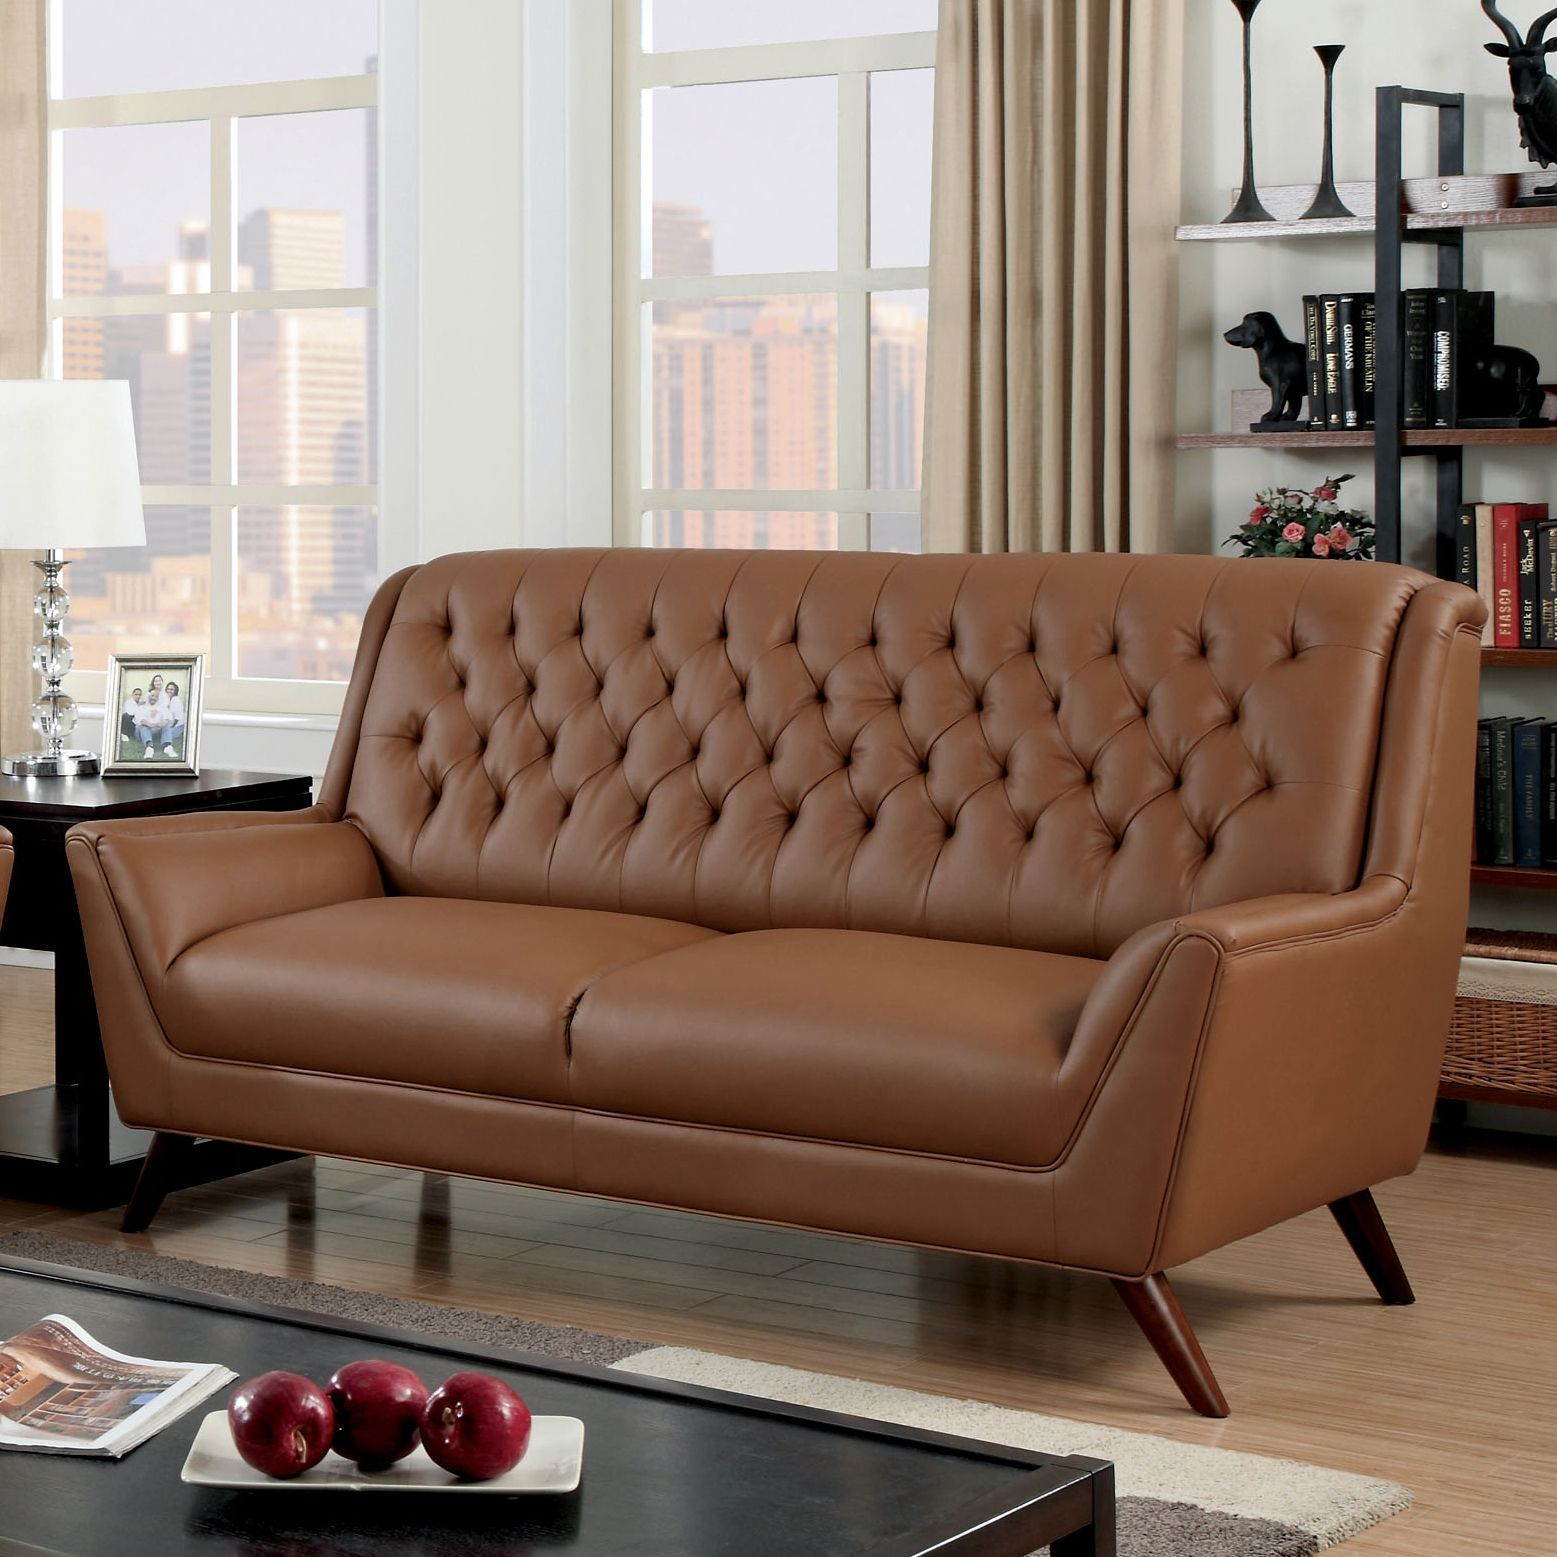 Astonishing Furniture Of America Valentino Mid Century Modern Bonded Gamerscity Chair Design For Home Gamerscityorg